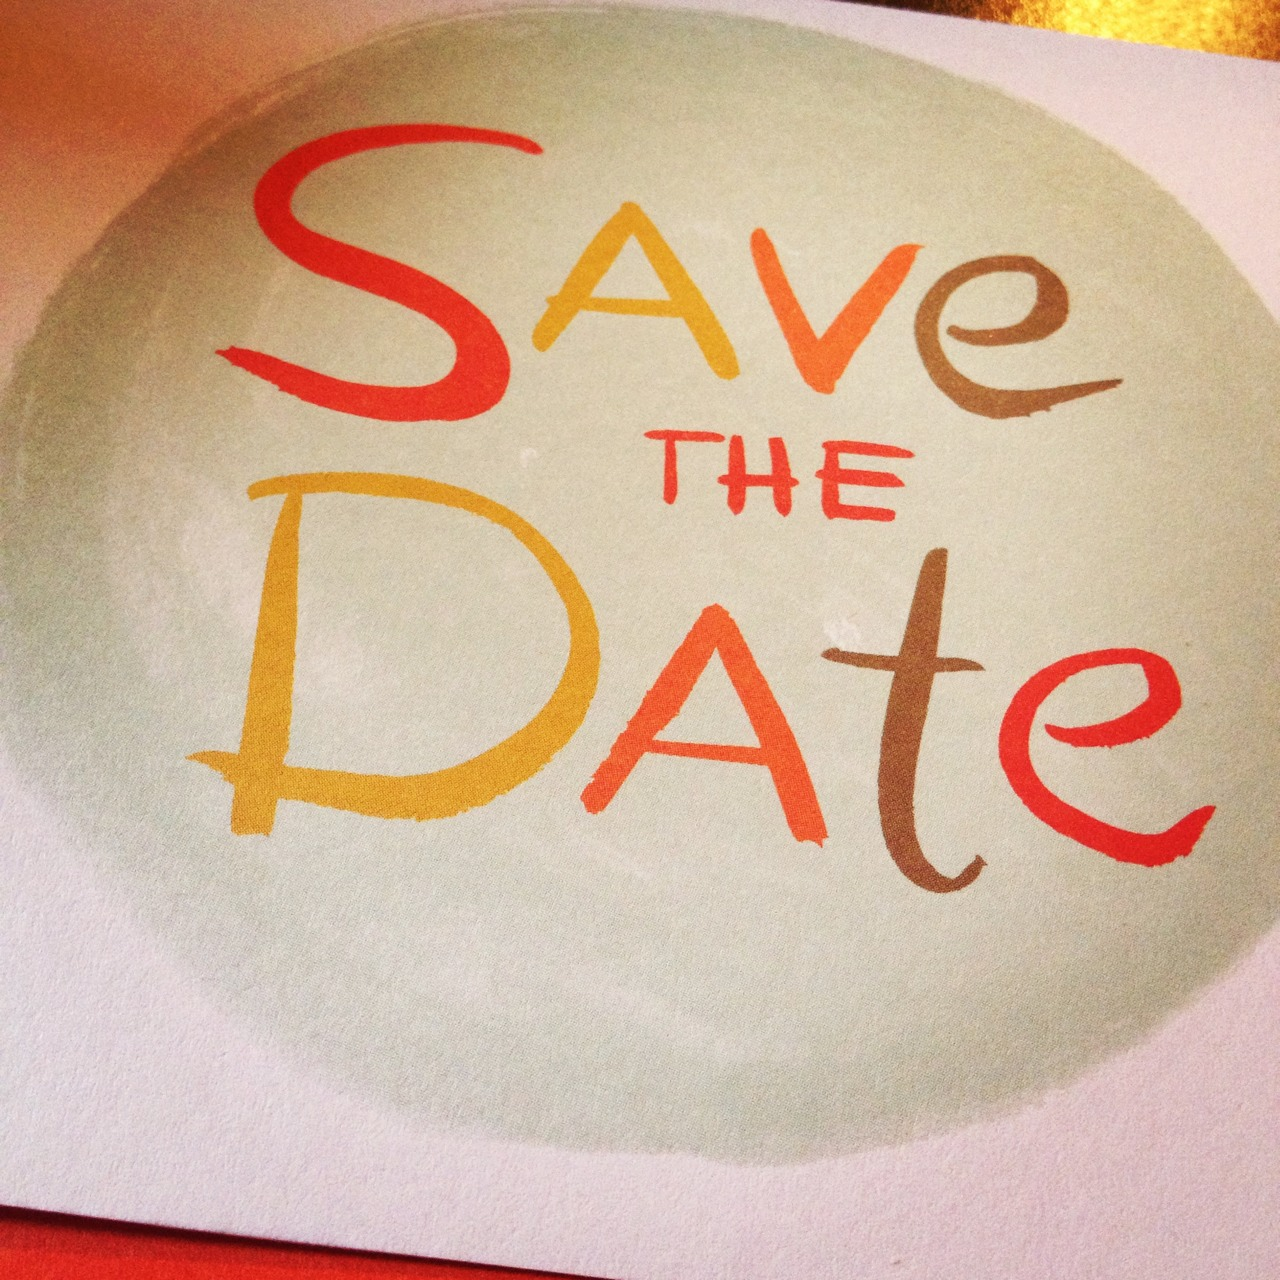 Second Annual DateNight November 22nd, 7-9pm     Be on the lookout for your Save the Date cards this week.     You can also RSVP early by visiting   http://GoServeChange.com/DateNight